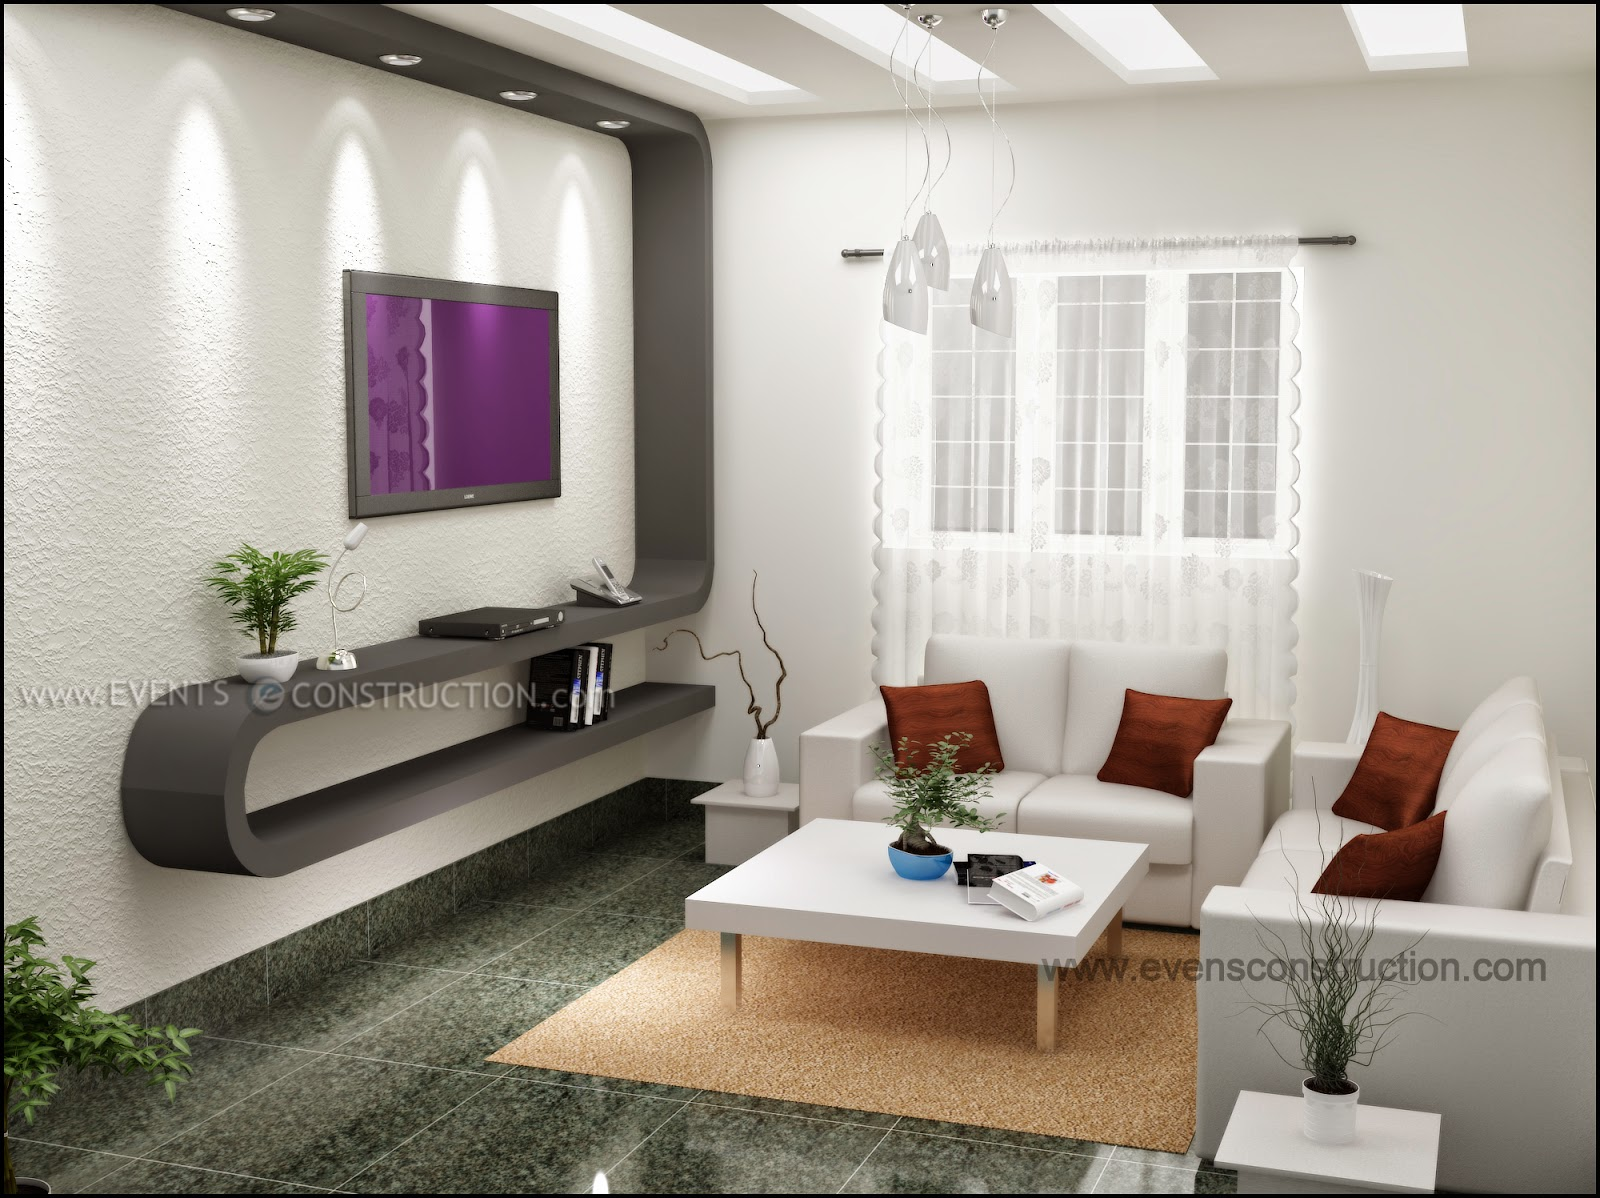 Evens construction pvt ltd june 2014 for Living room design ideas kerala